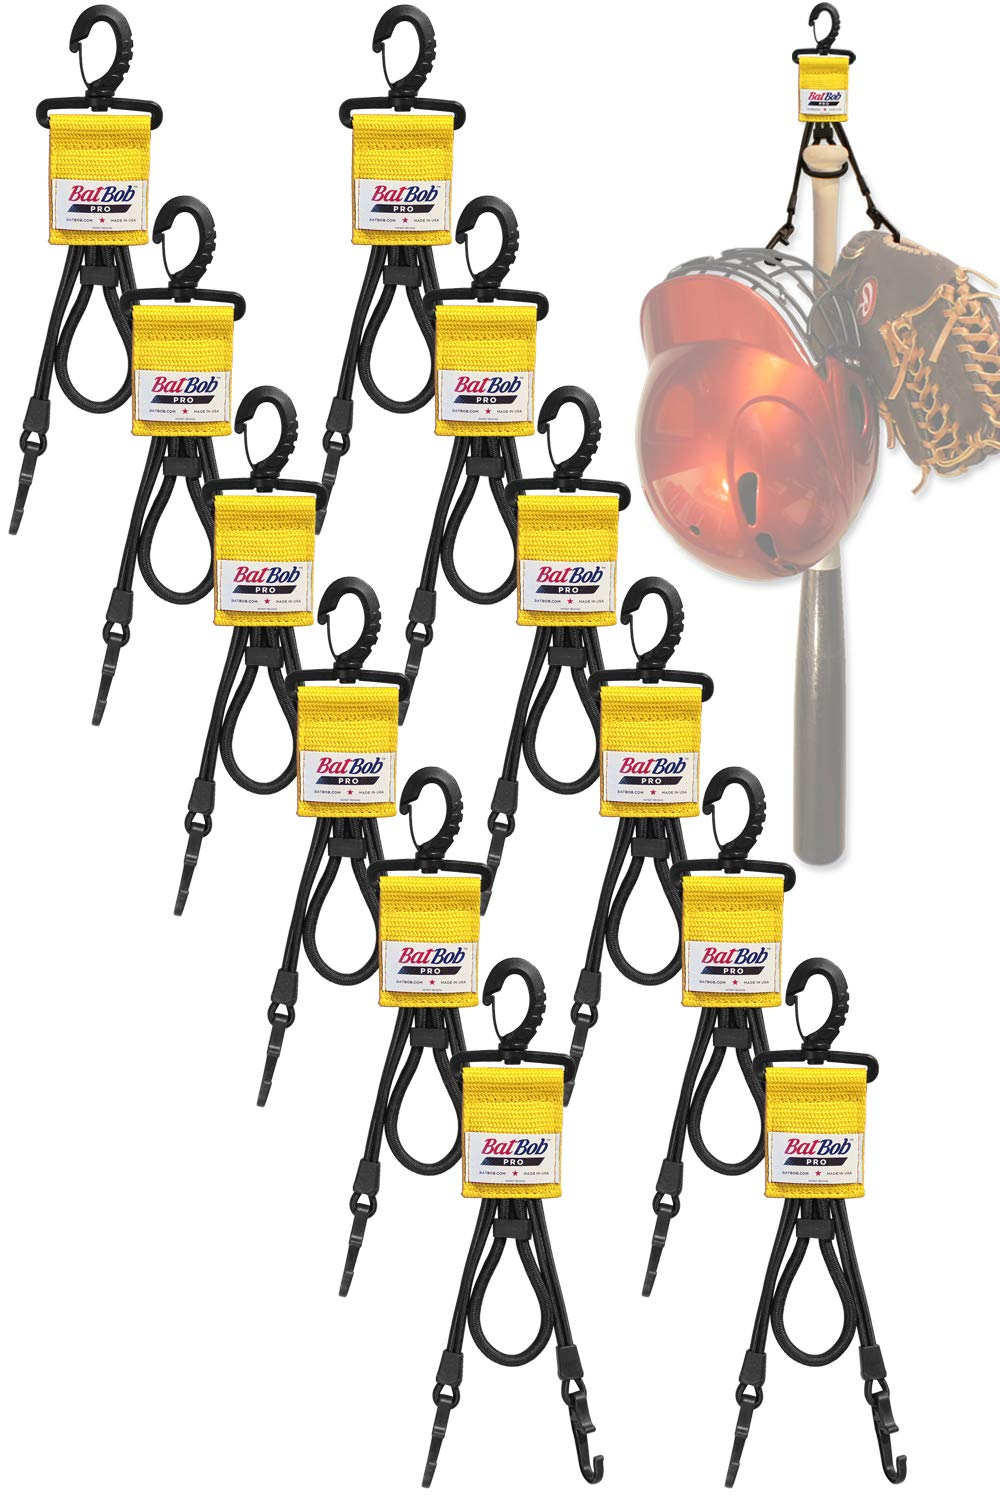 BatBob (Team 12 pack) Dugout Gear Hanger - The Dugout Organizer - For Baseball and Softball to hold bats, helmets and gloves (Gold) by BatBob